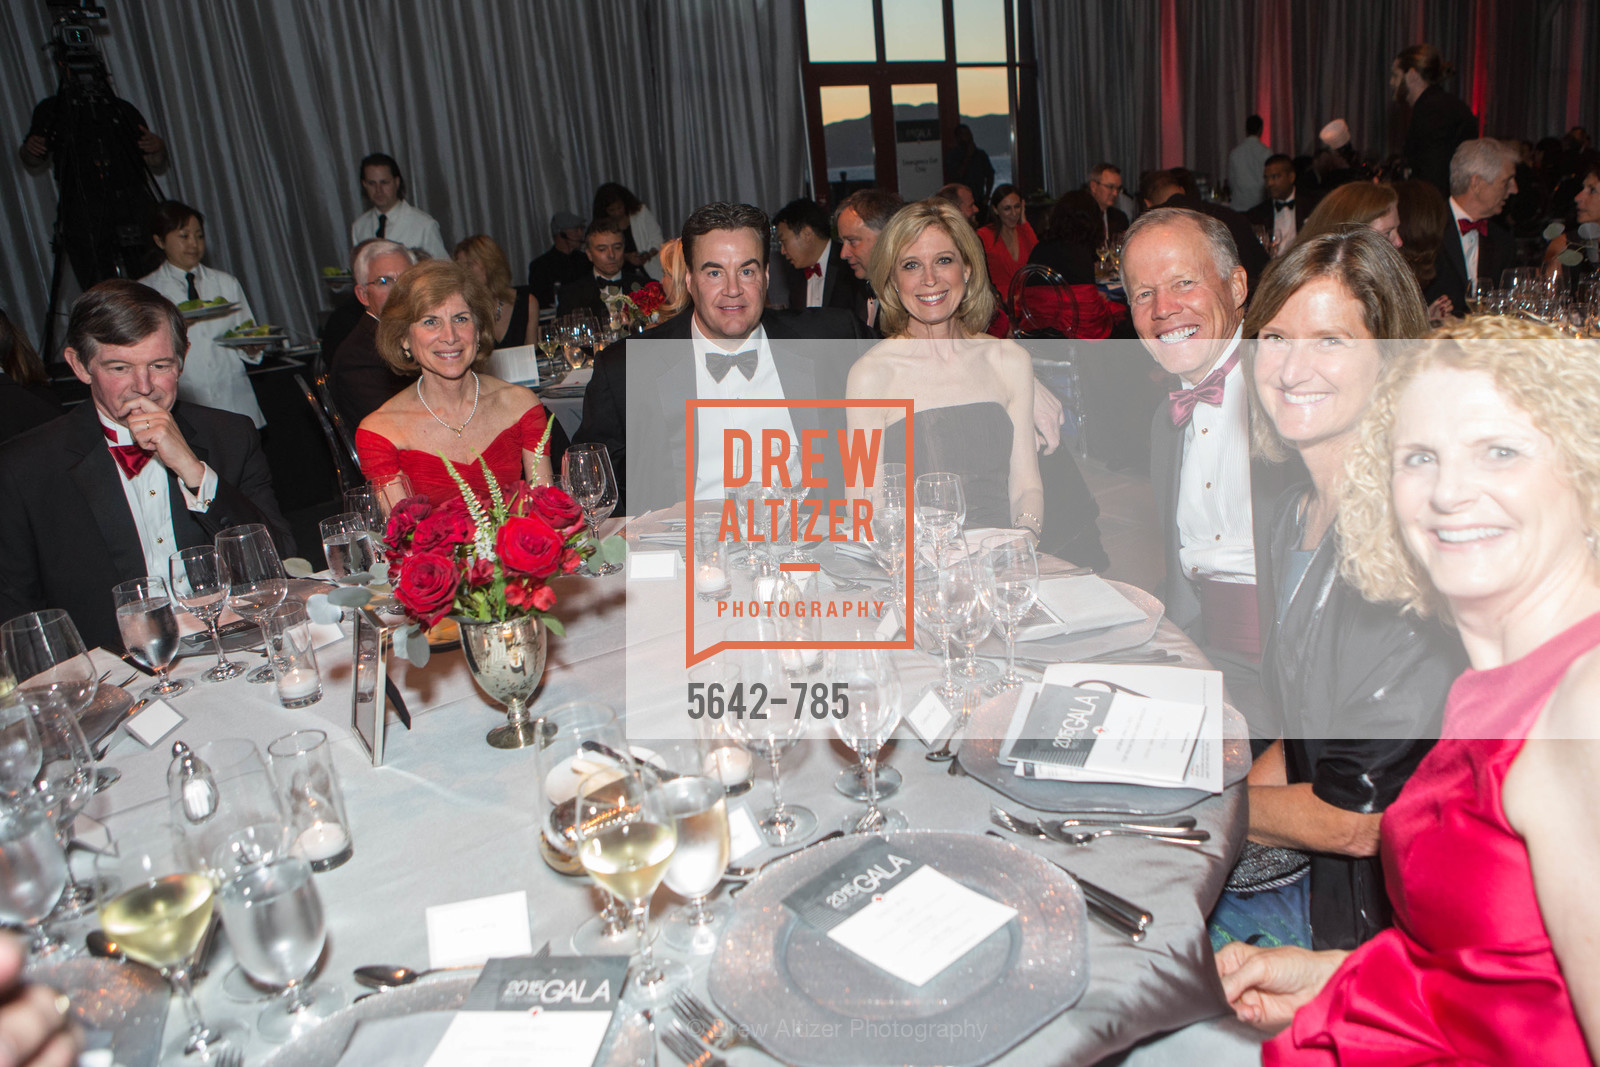 Anthony Earley, Gail McGovern, Jim Messemer, Debbie Messemer, Sarah Earley, 2015 RED CROSS Gala, US, April 11th, 2015,Drew Altizer, Drew Altizer Photography, full-service agency, private events, San Francisco photographer, photographer california